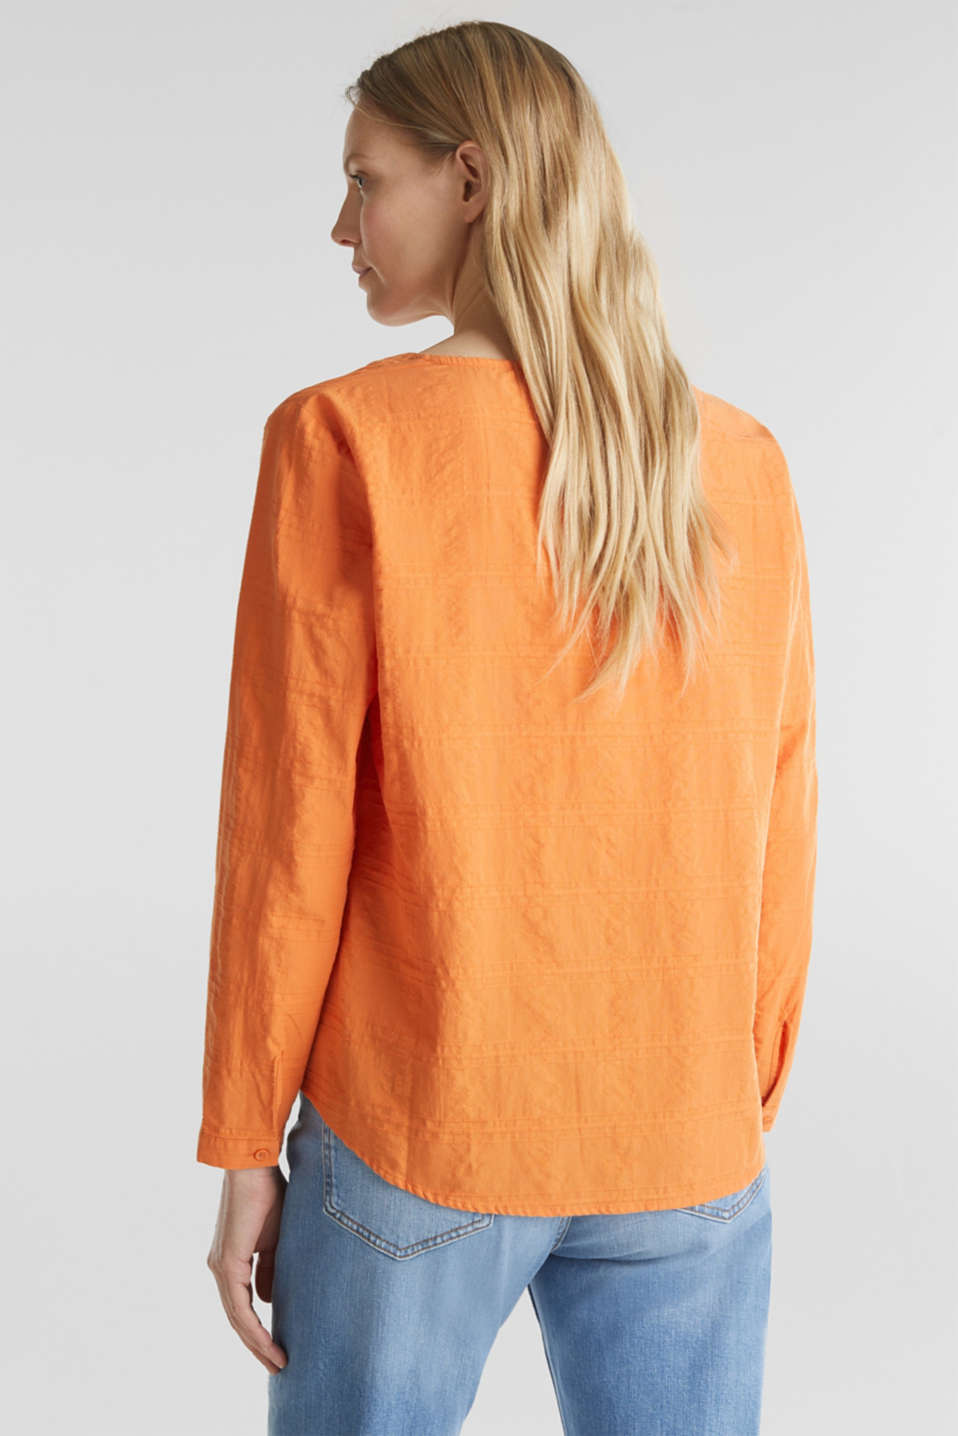 Textured blouse, 100% cotton, RUST ORANGE, detail image number 3